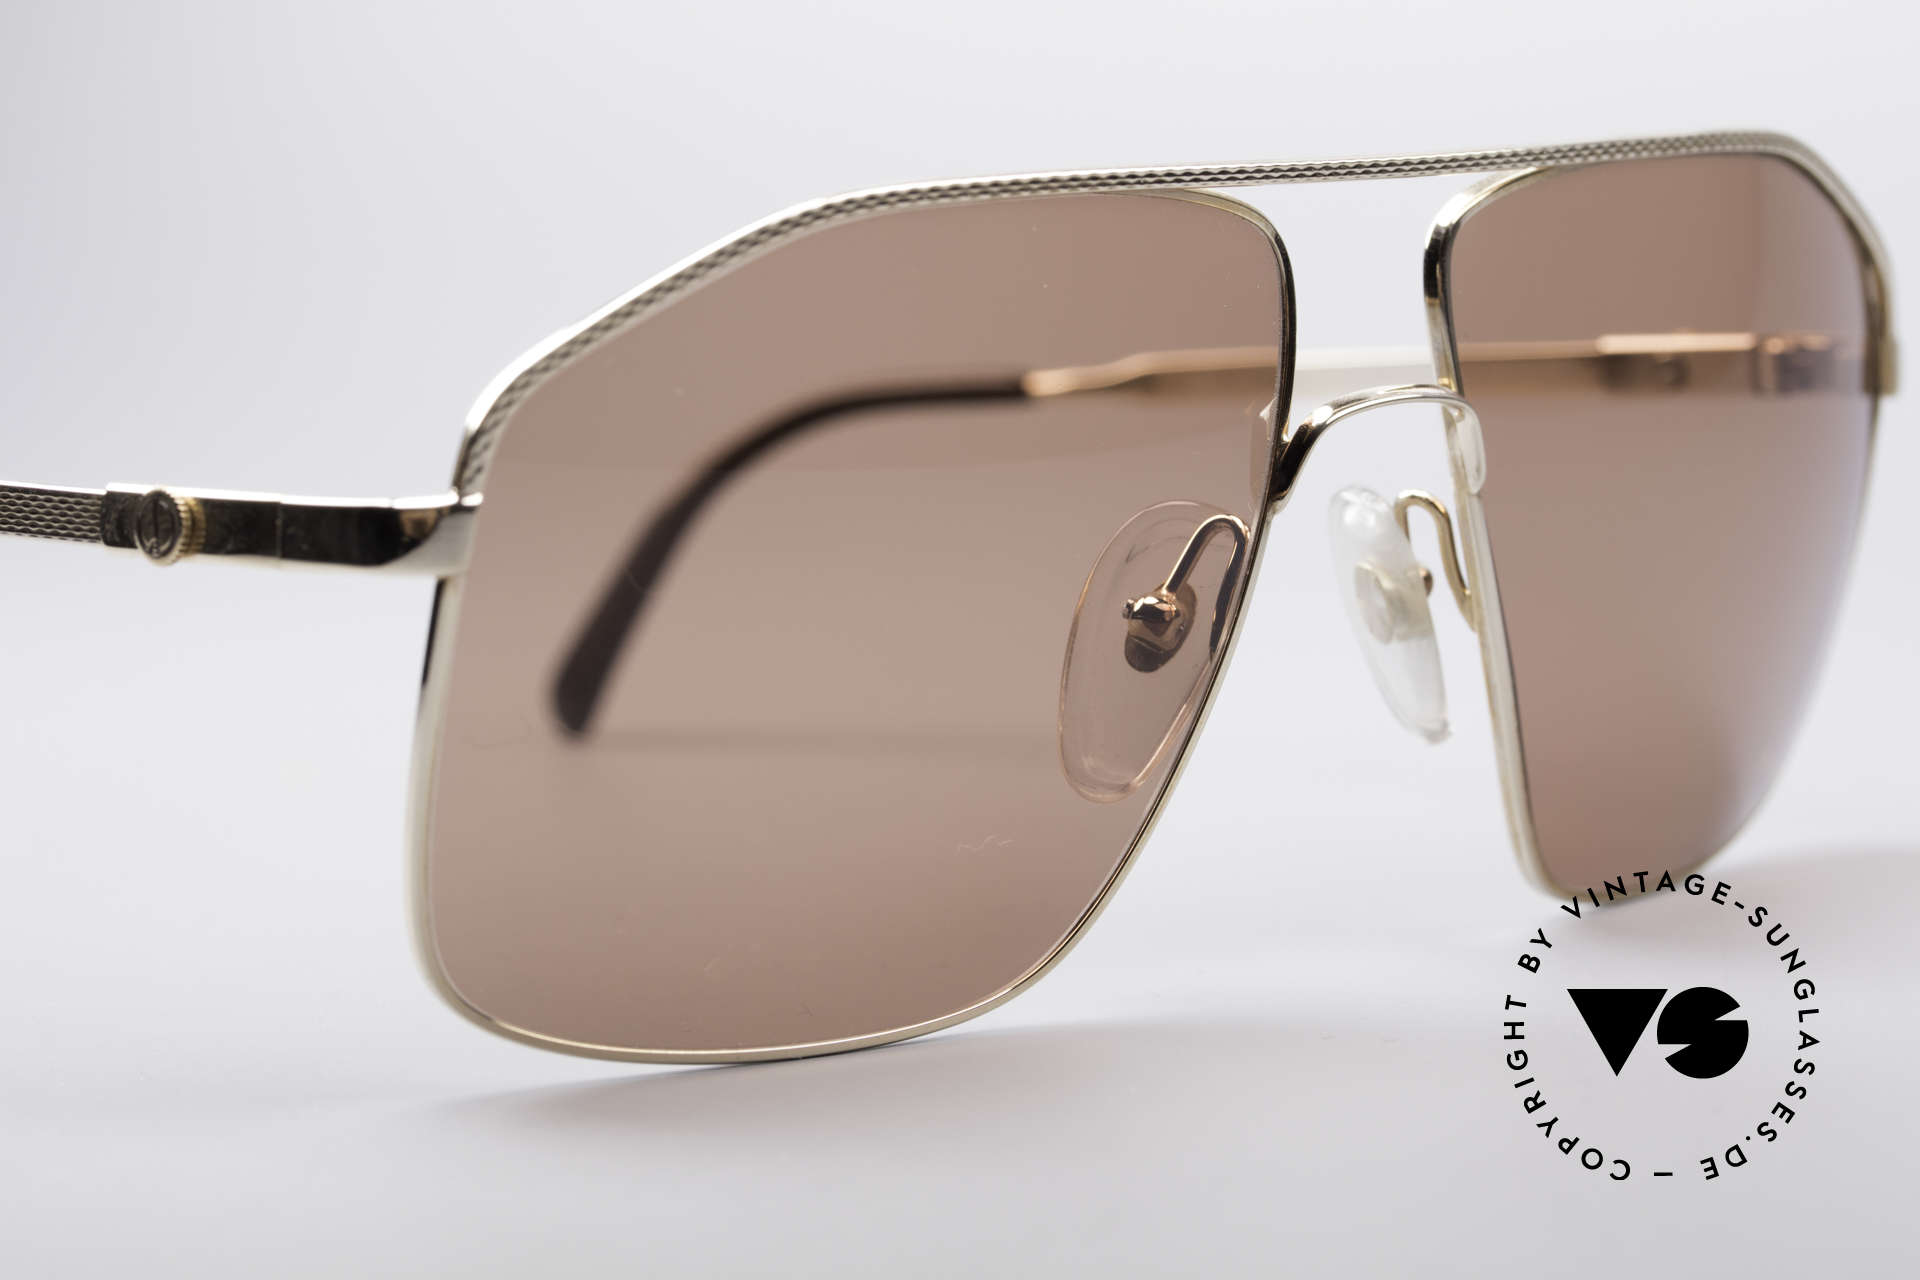 Dunhill 6104 Gold Plated Shades 90's Men, never worn (like all our gold-plated 90s shades), Made for Men